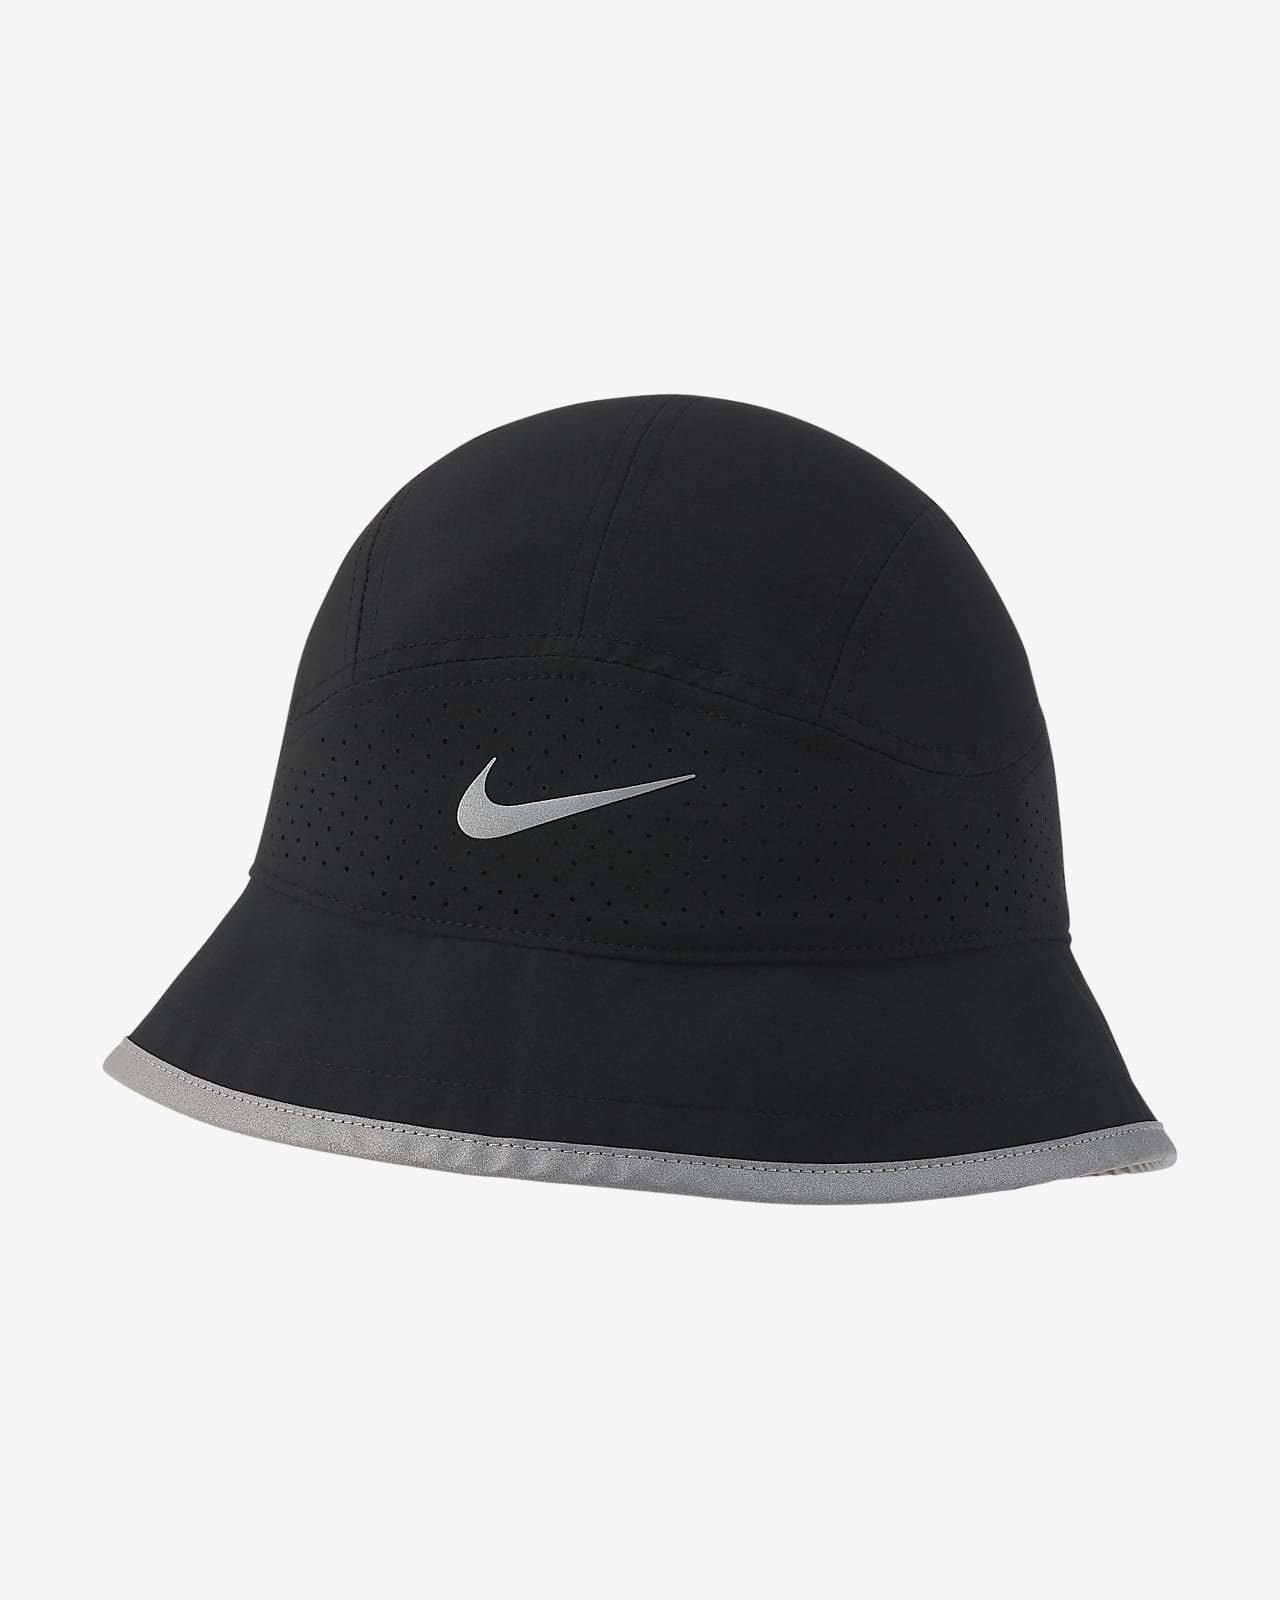 Nike Dri-FIT Perforated Running Bucket Hat